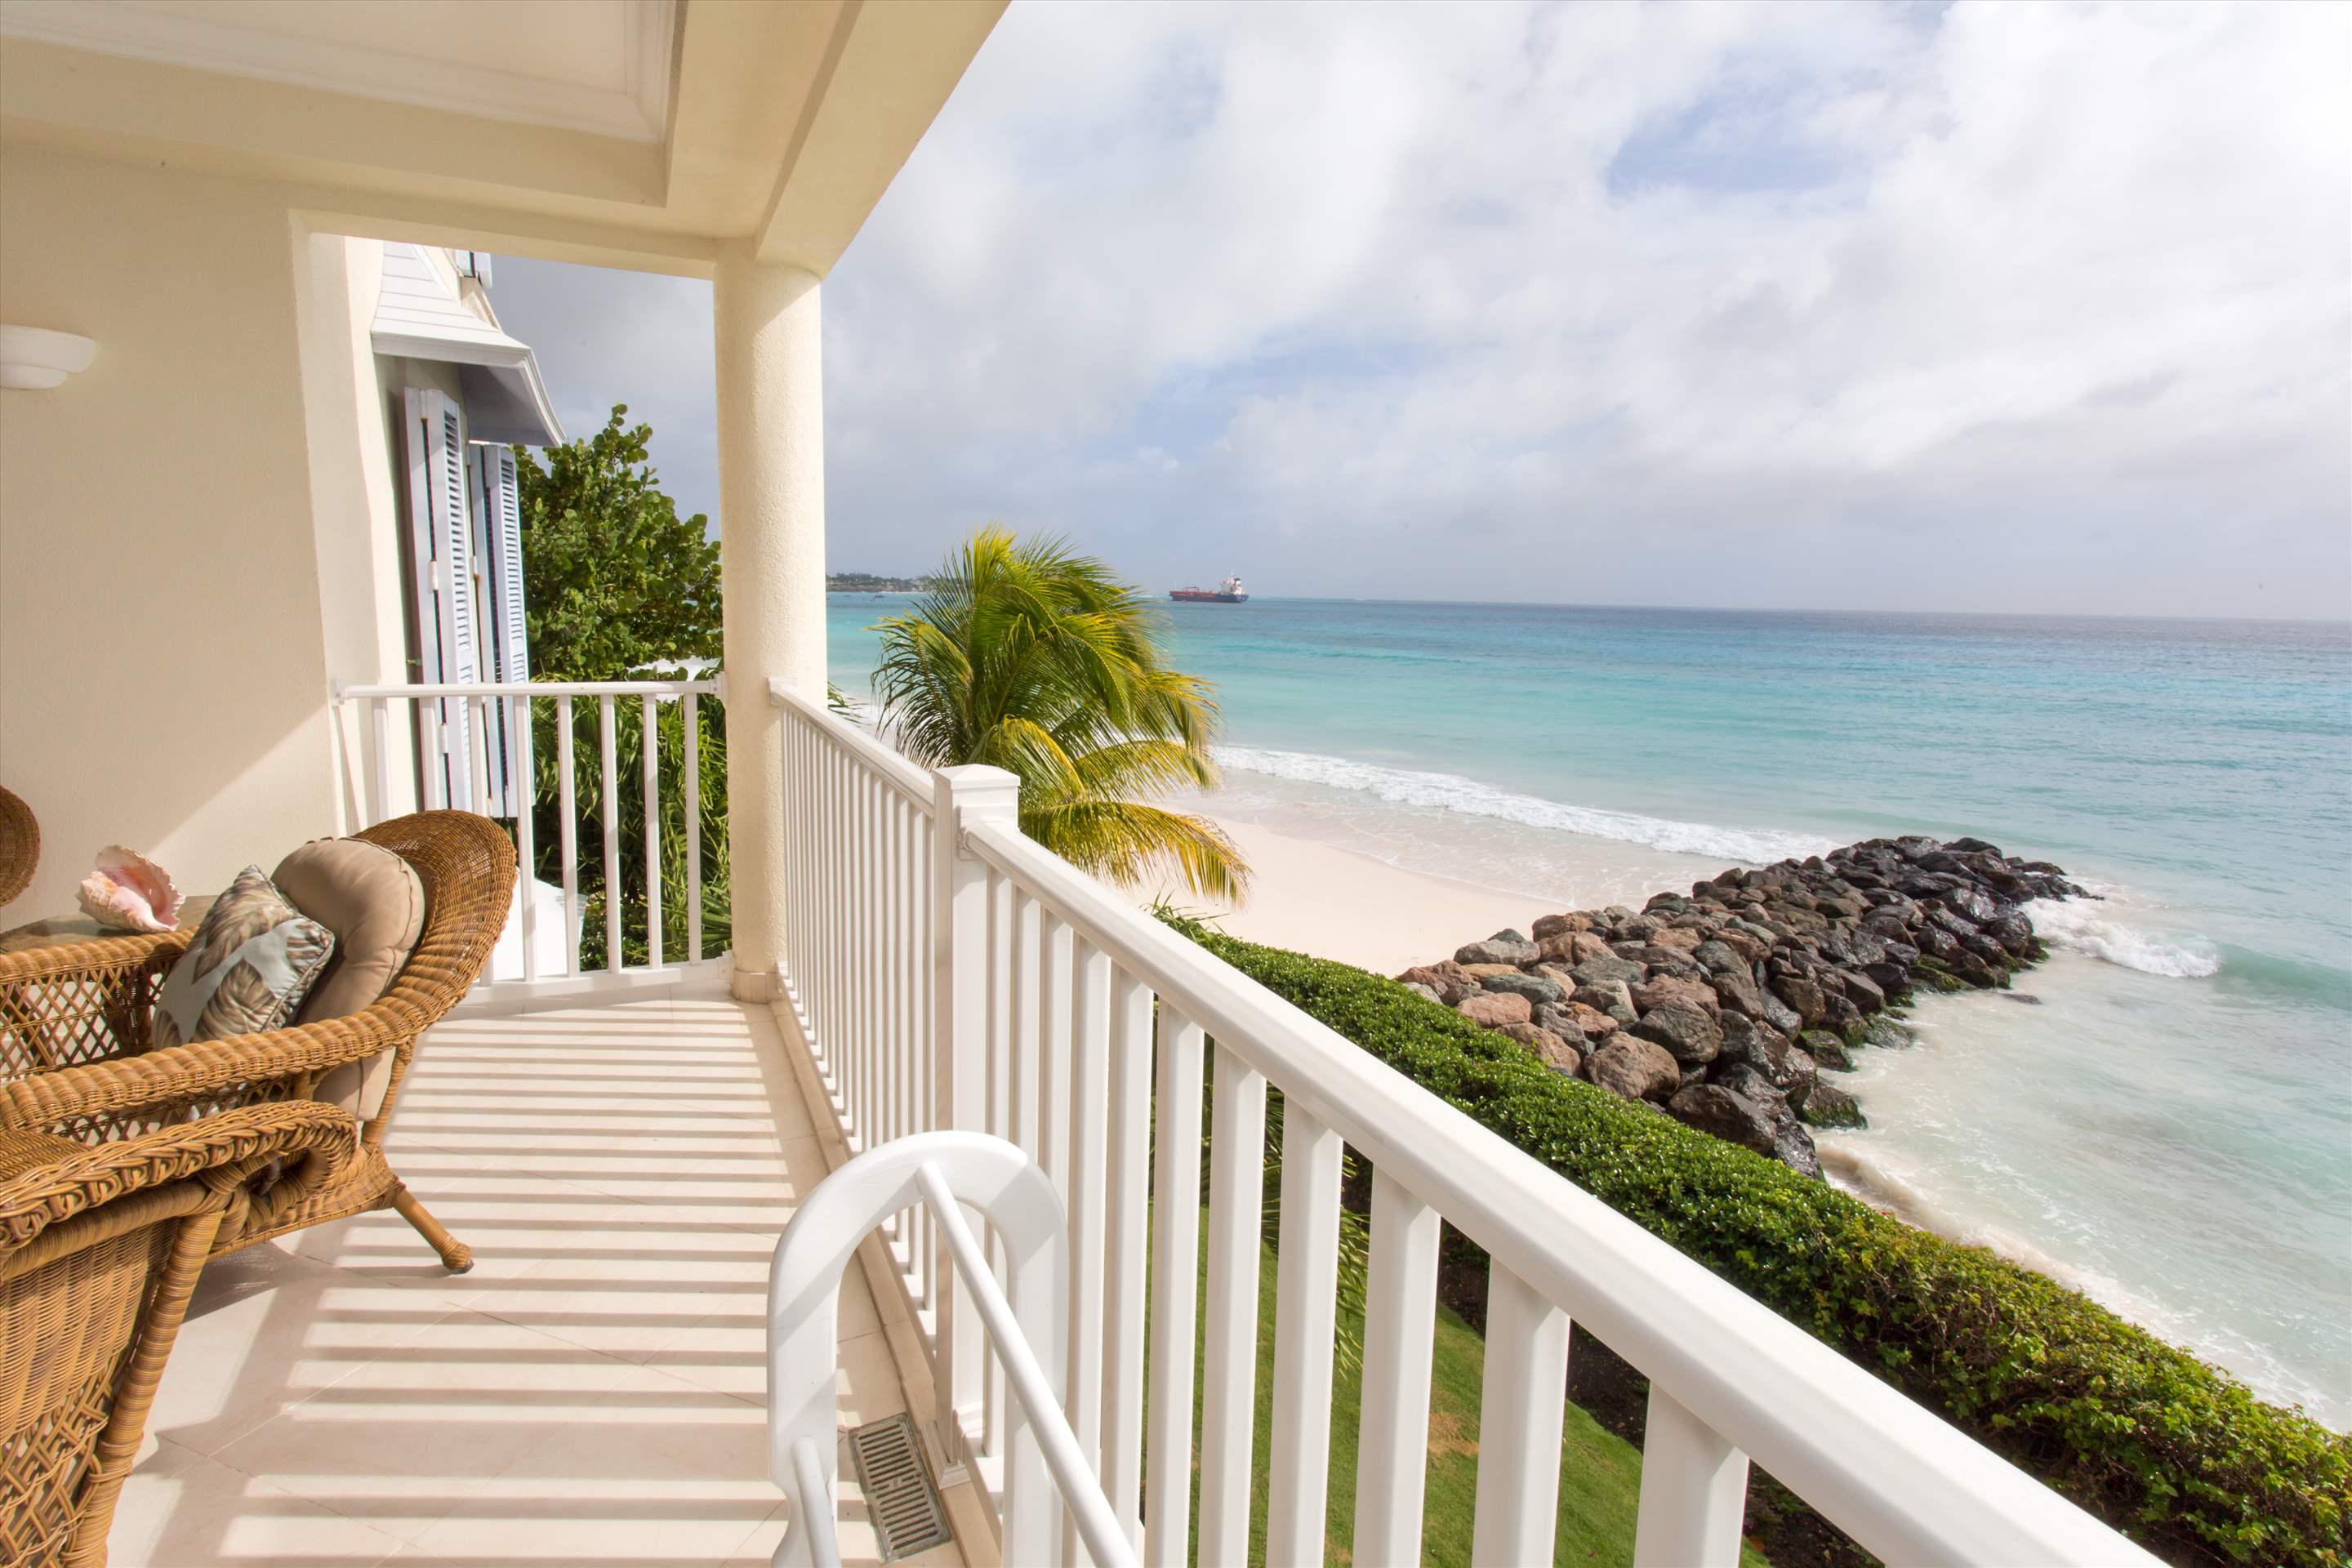 Sandy Hook 21, 2 bedroom, 2 bedroom villa in St. Lawrence Gap & South Coast, Barbados